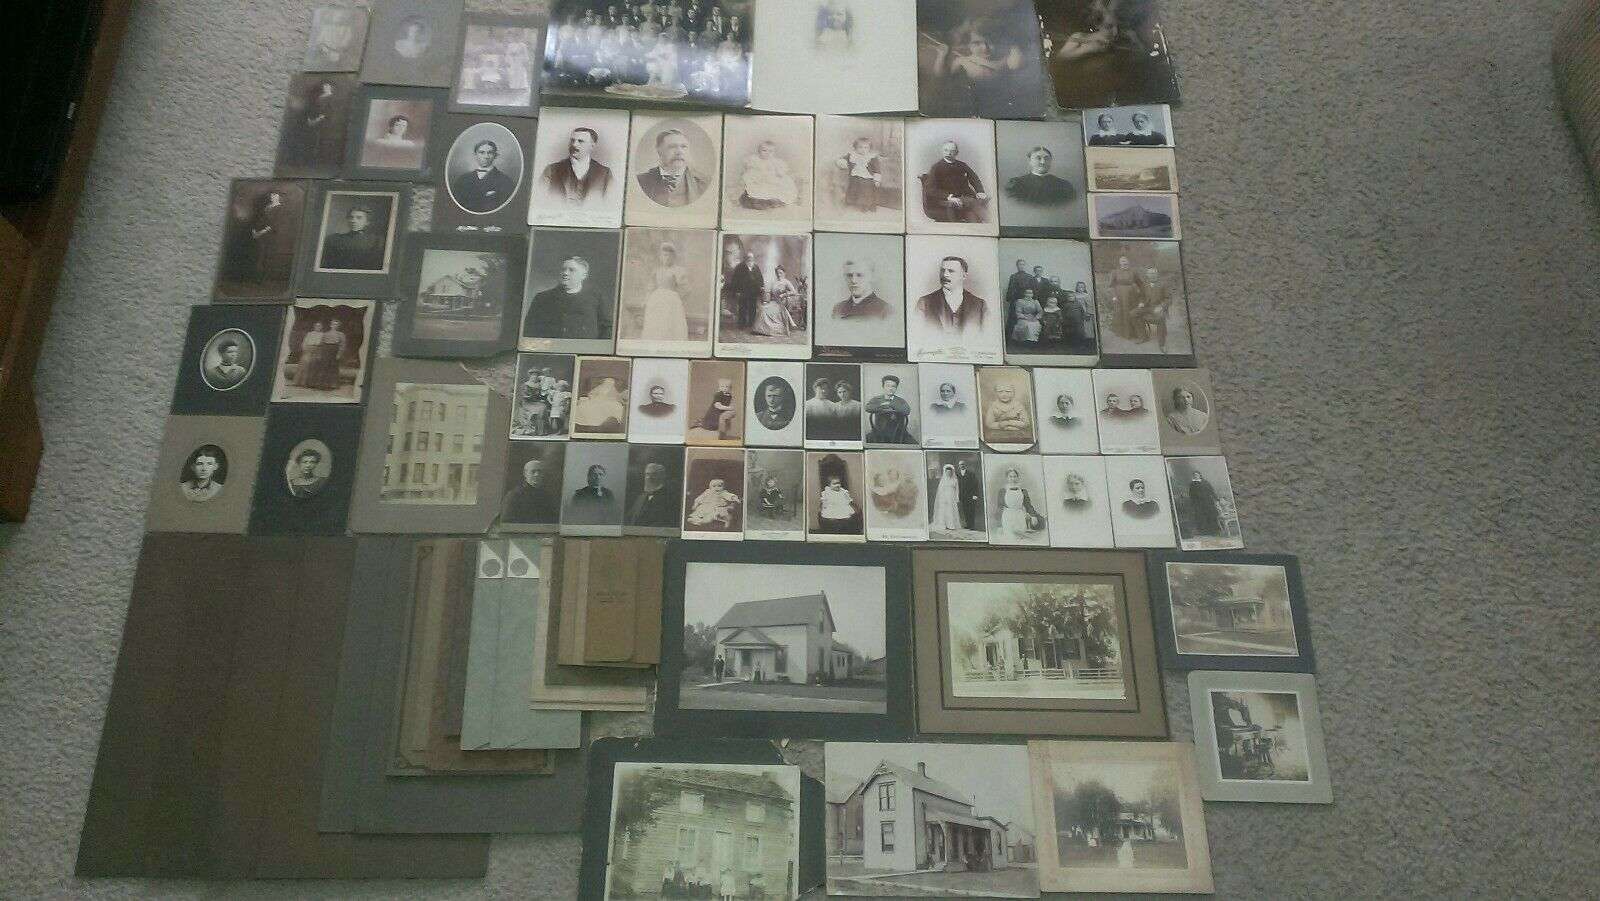 dating cdvs cabinet cards Carte de visite - dating 19th century  in 1870 an advertisement quoted six cdvs for $1  for example, early cabinet cards used the exact same process as .